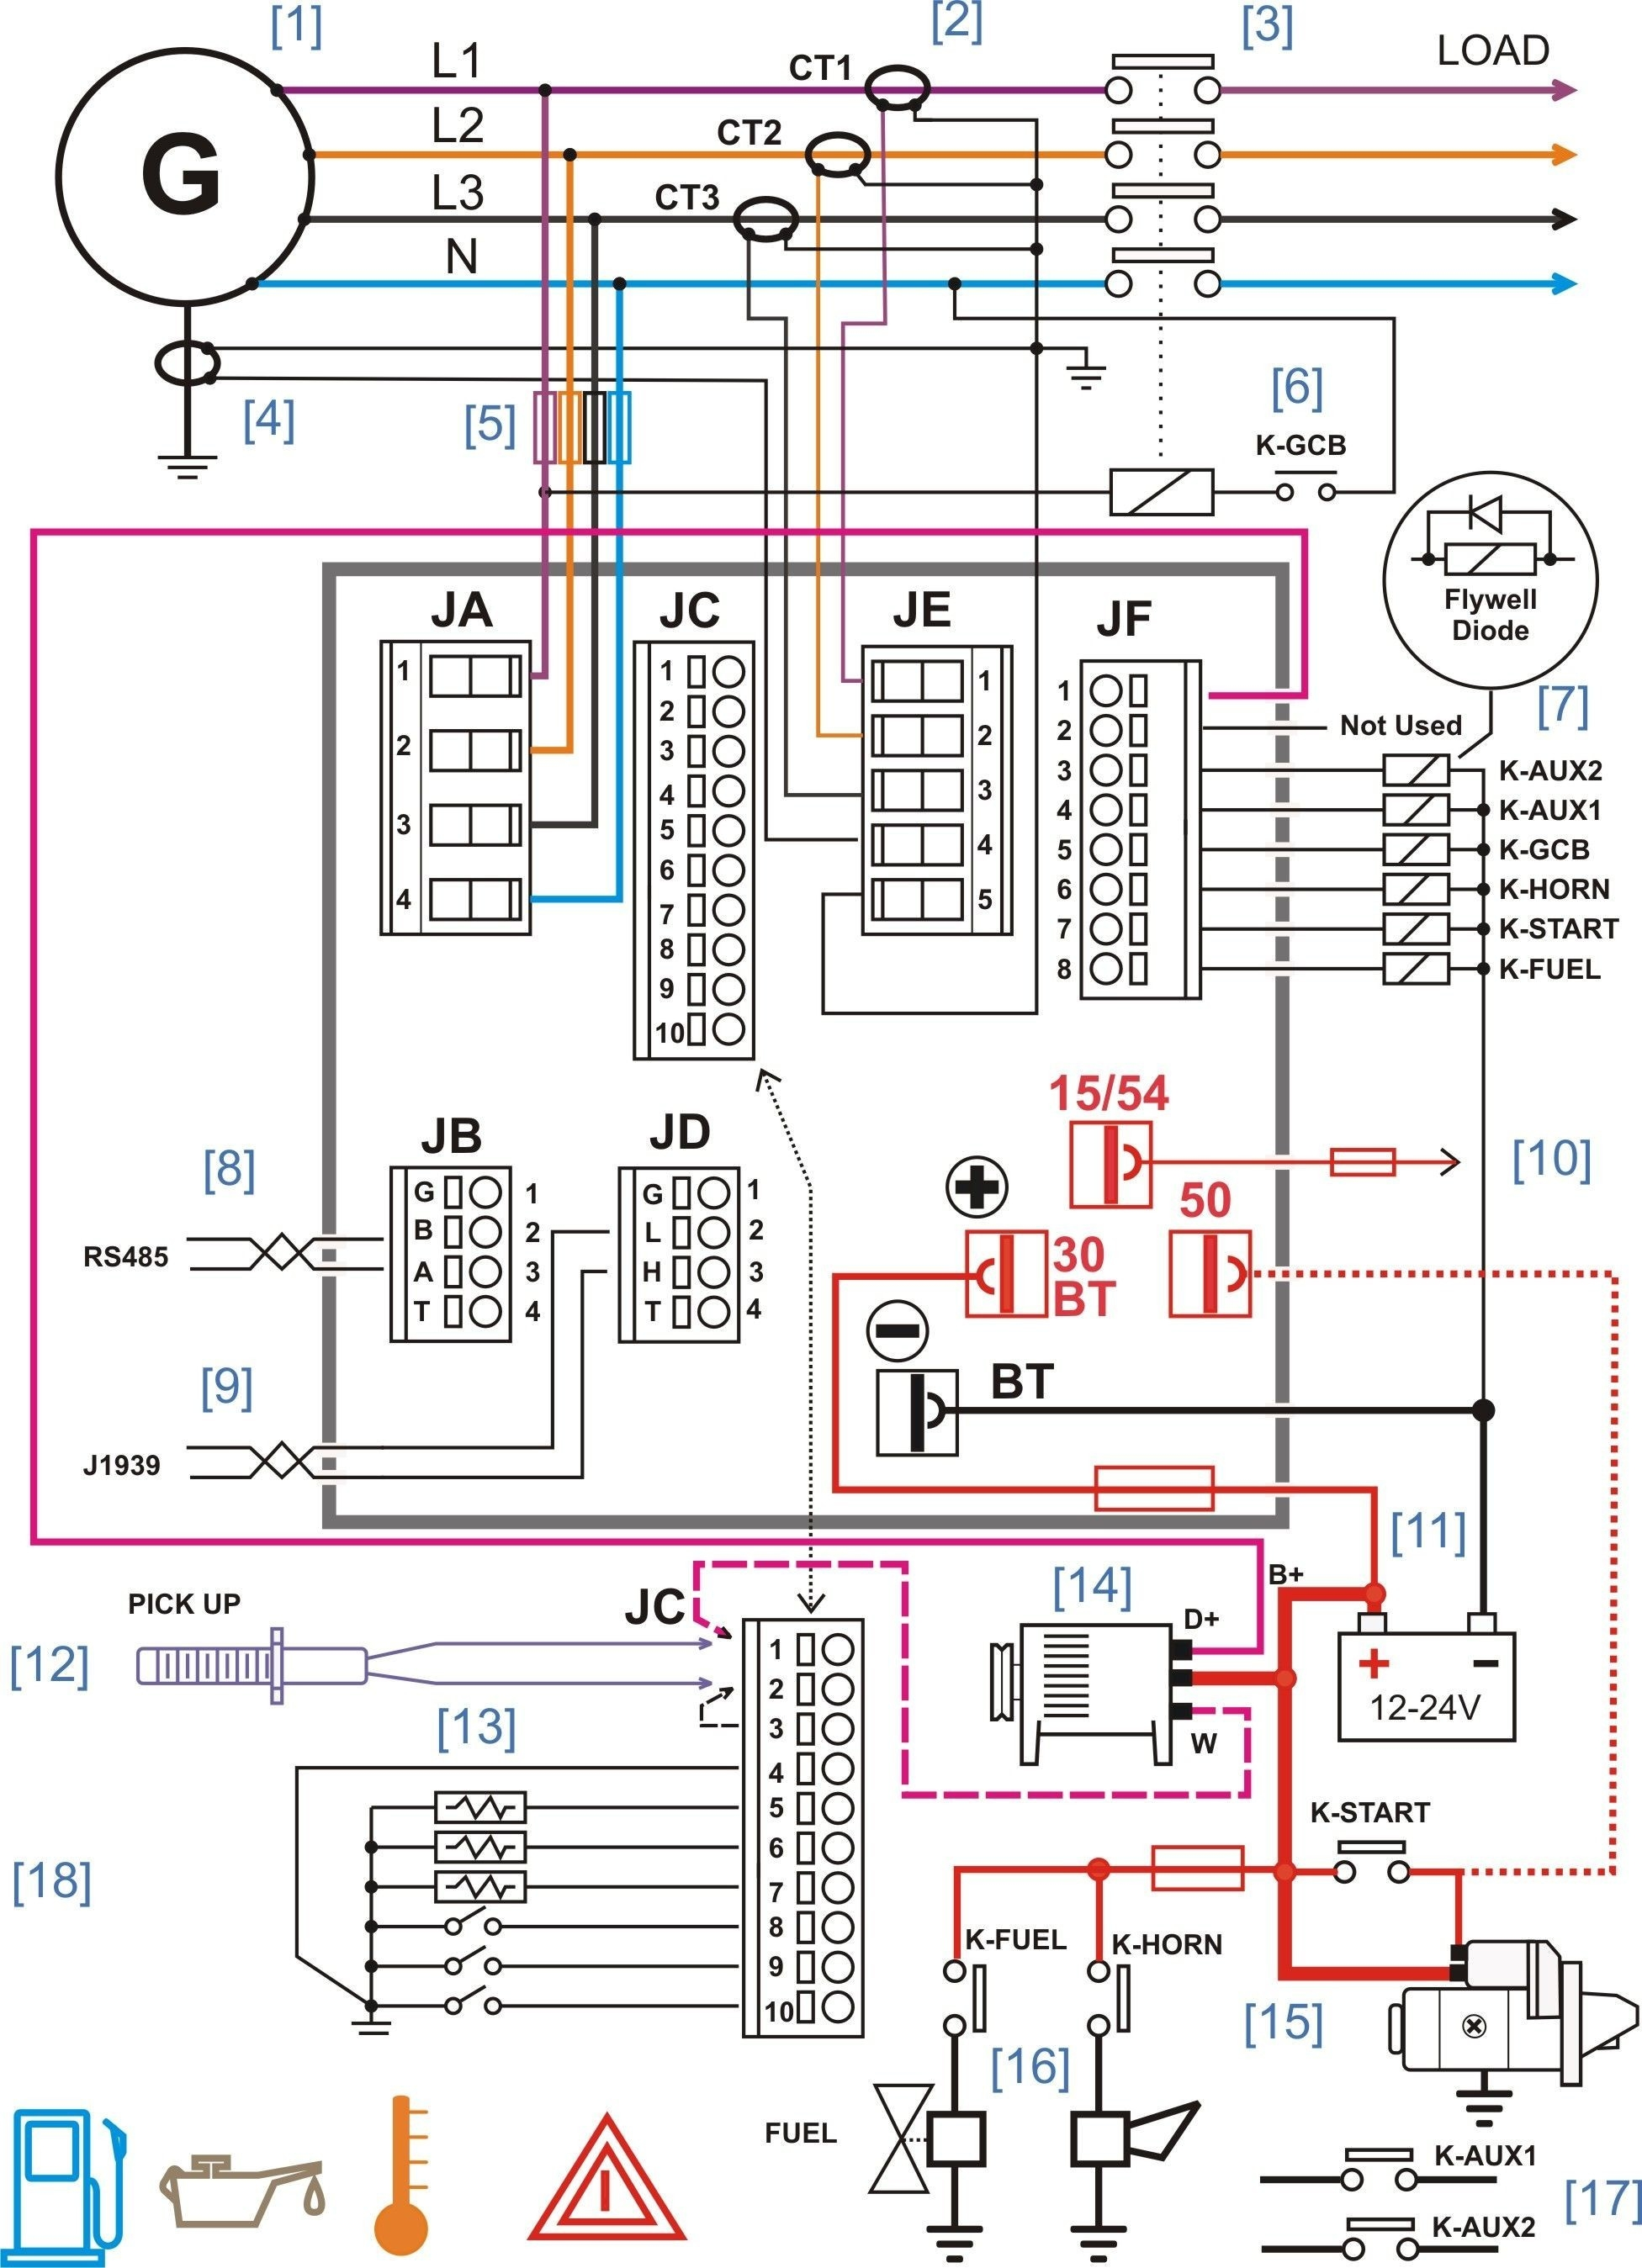 Transfer Switch Wiring Diagram on residential generator, standby generator, reliance generator, 50 amp automatic, for 30kw generator automatic, for generac 400 amp auto, reliance controls, 11kw generac select circuit, 150a kohler, onan automatic,